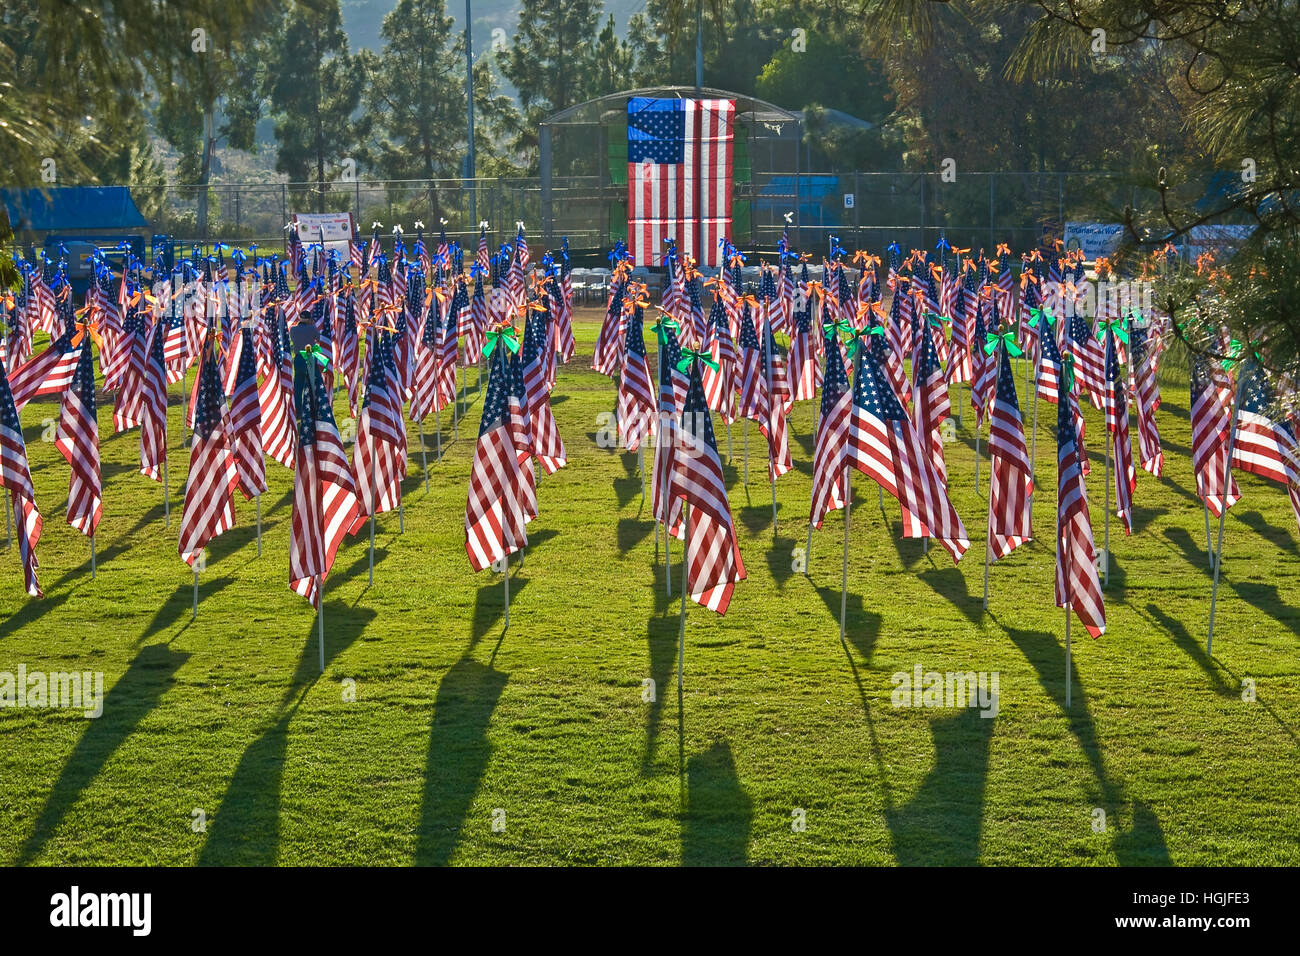 Rancho Bernardo Healing Field is created with 1,100 3-foot-by-5-foot American flags on 8-foot poles. The flags represent - Stock Image